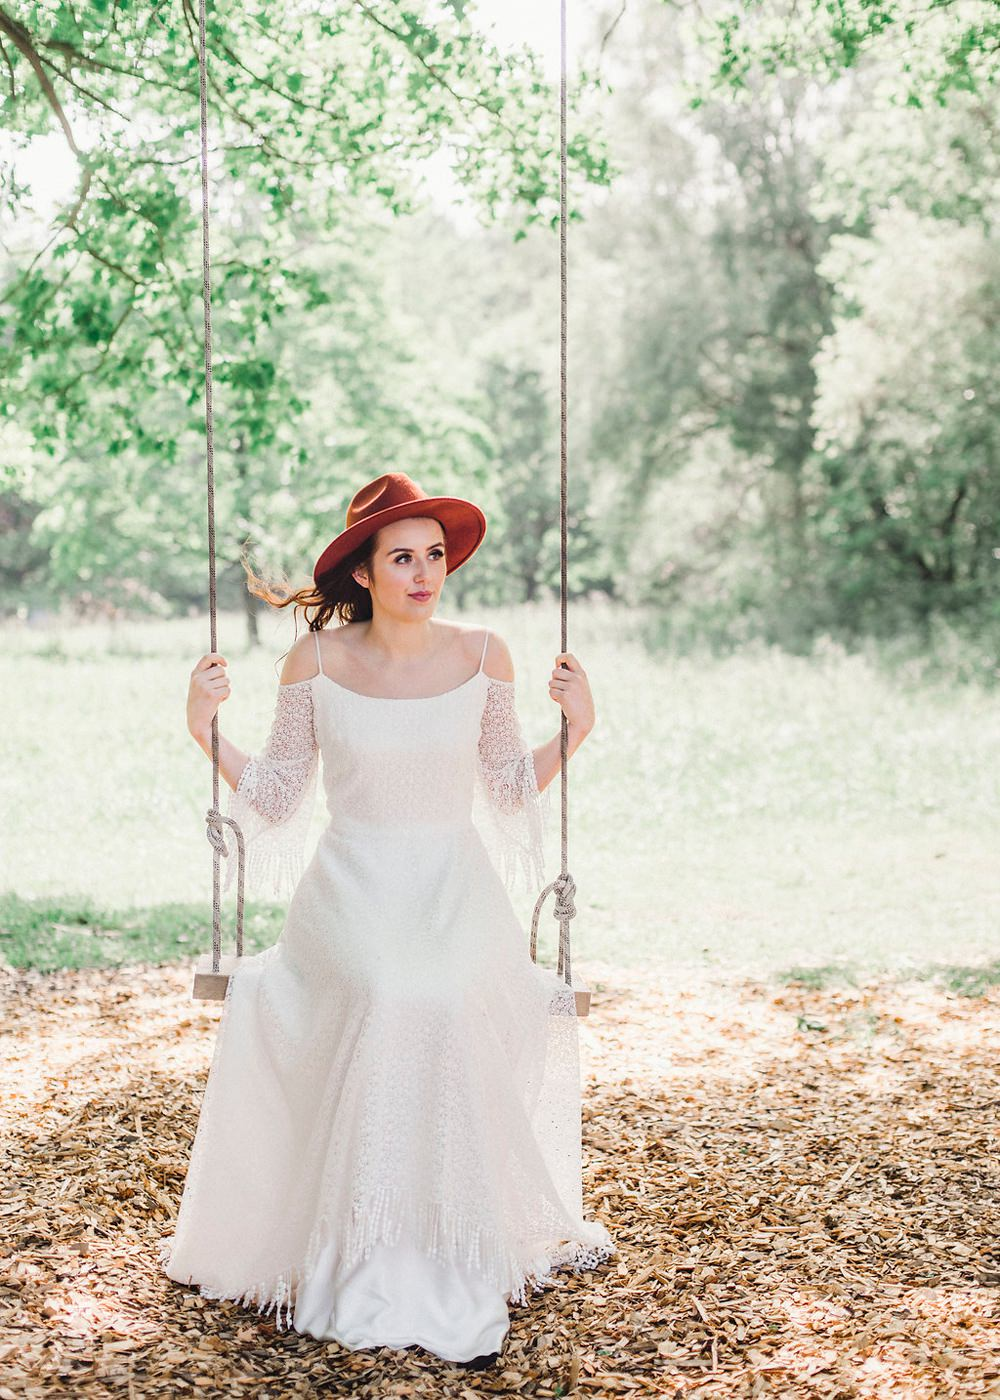 Bride Bridal Fedora Hat Style Accessory Swing Boho Woodland Wedding Ideas Camp Katur Emily Olivia Photography